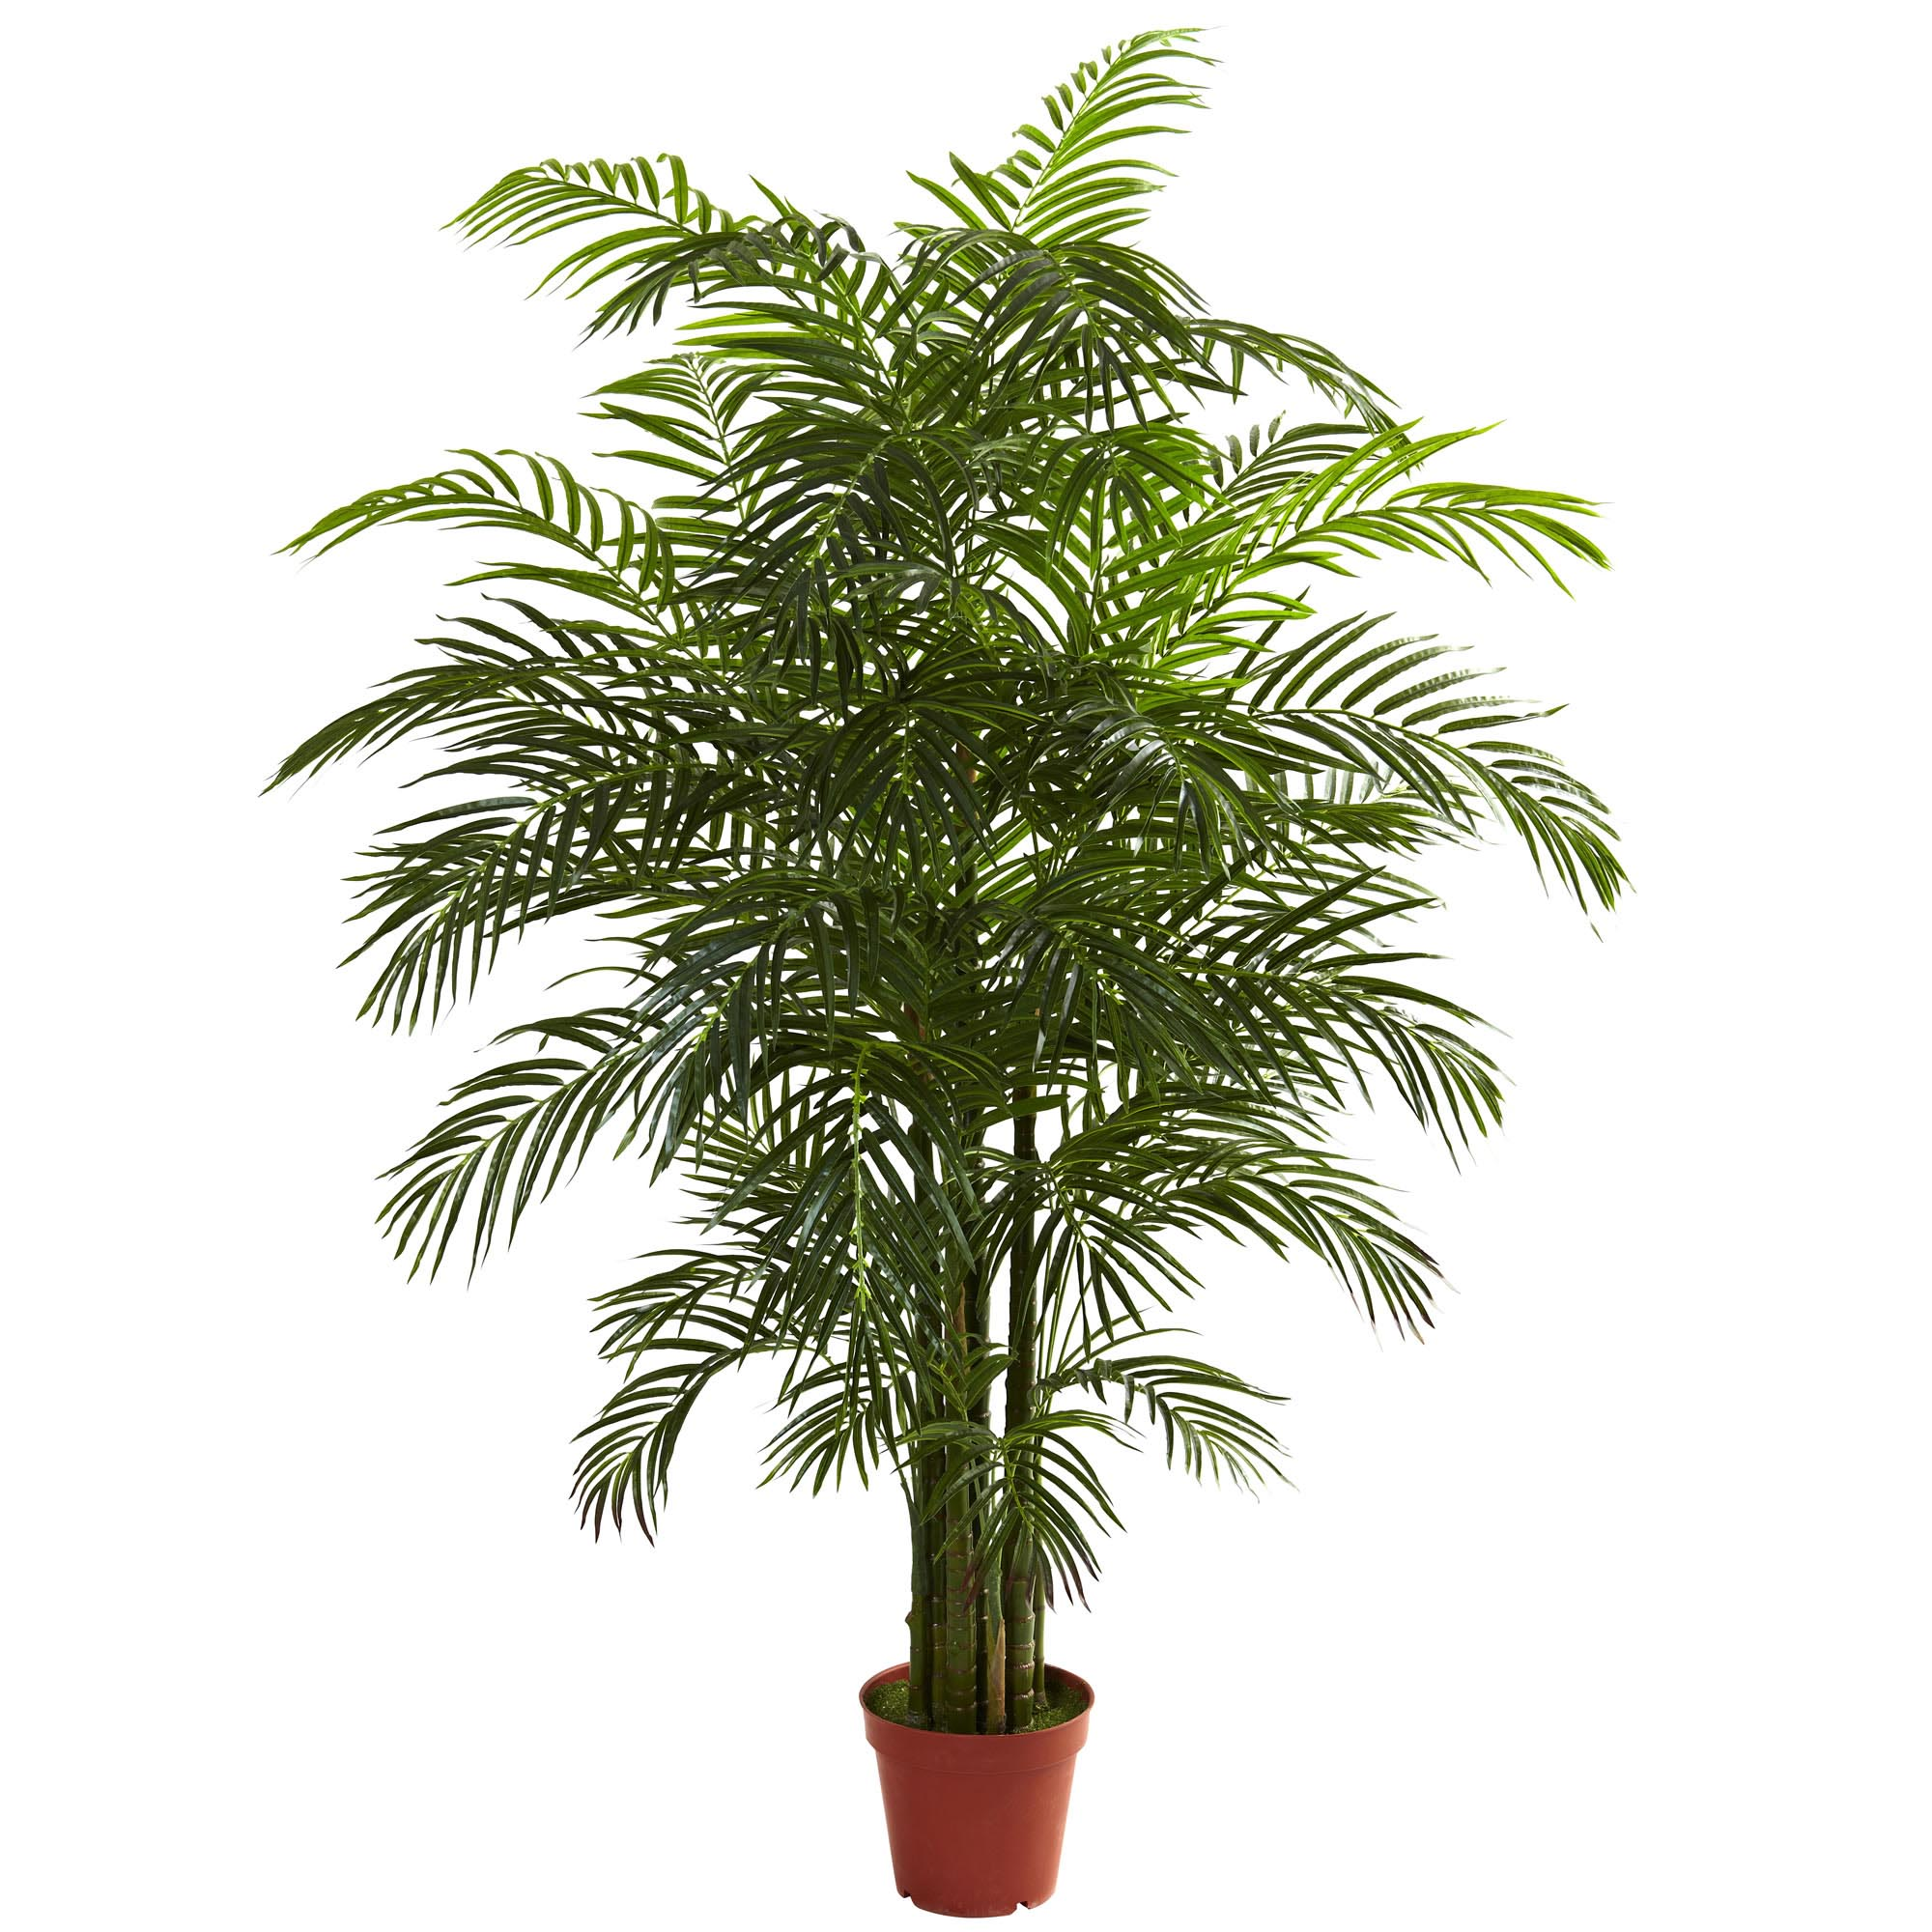 6.5 foot Outdoor Artificial Areca Palm: Limited UV 5390